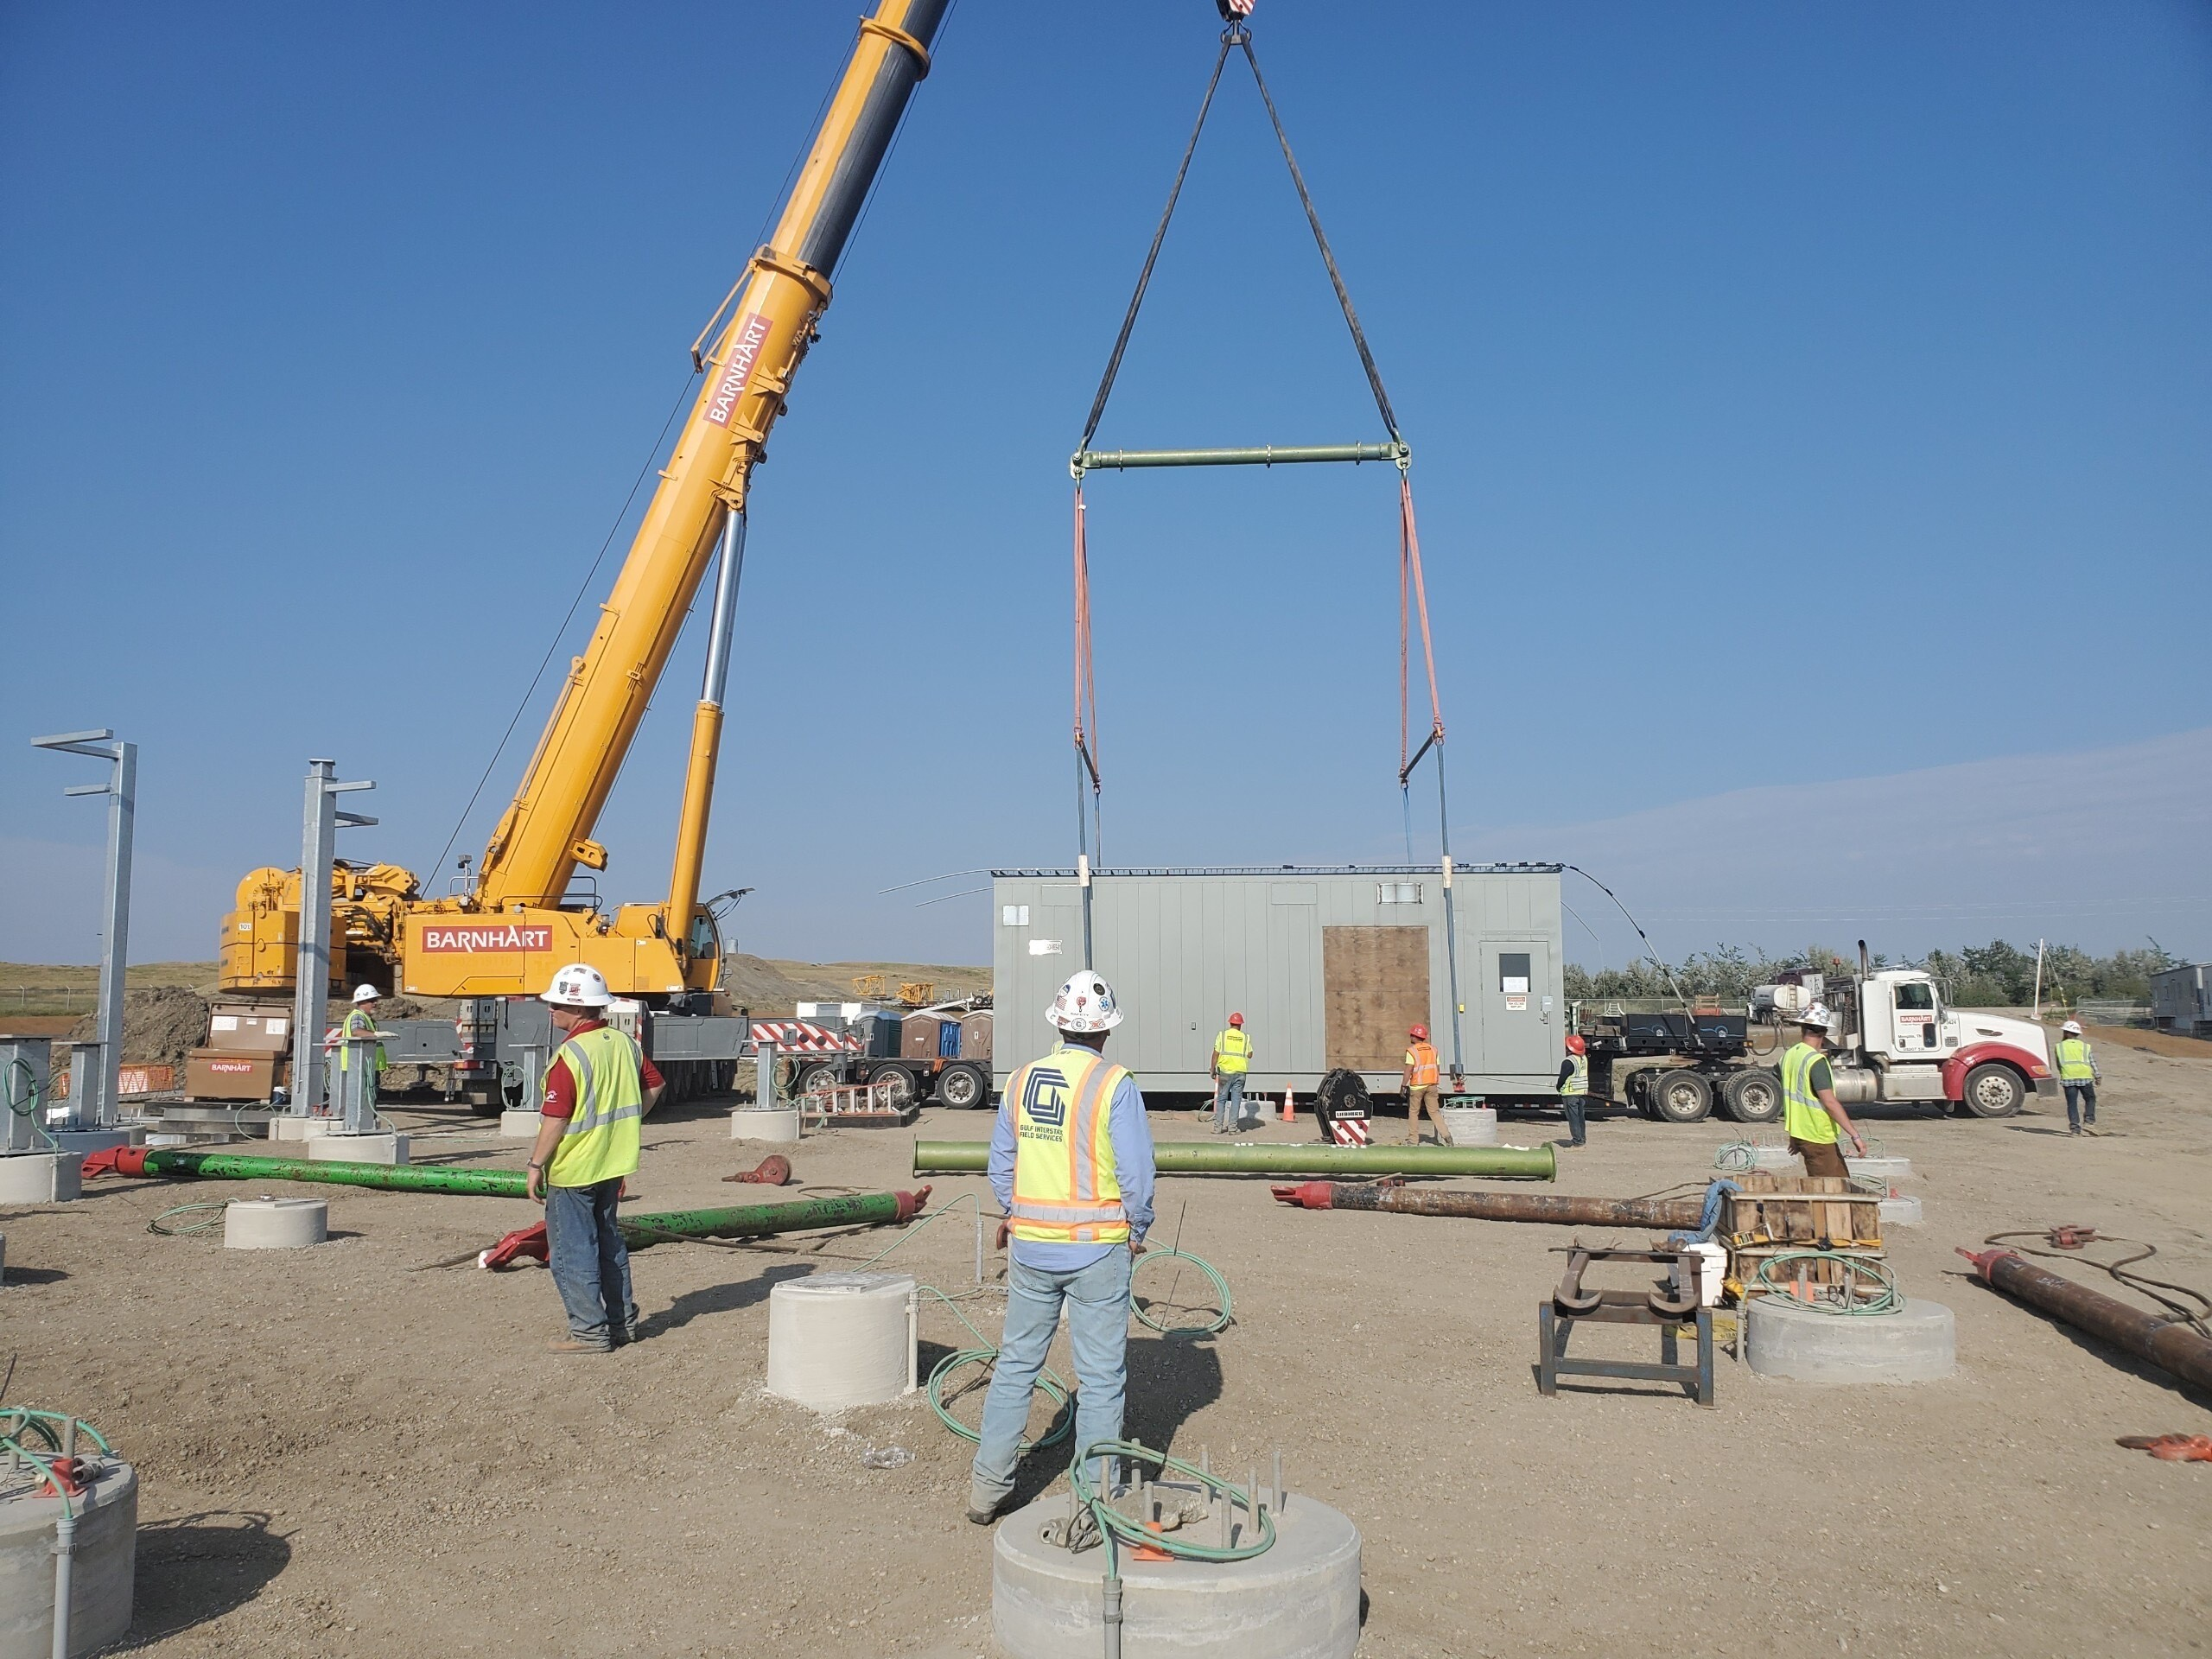 Labor stewards on pump stations 18, 19, and 20 in South Dakota.